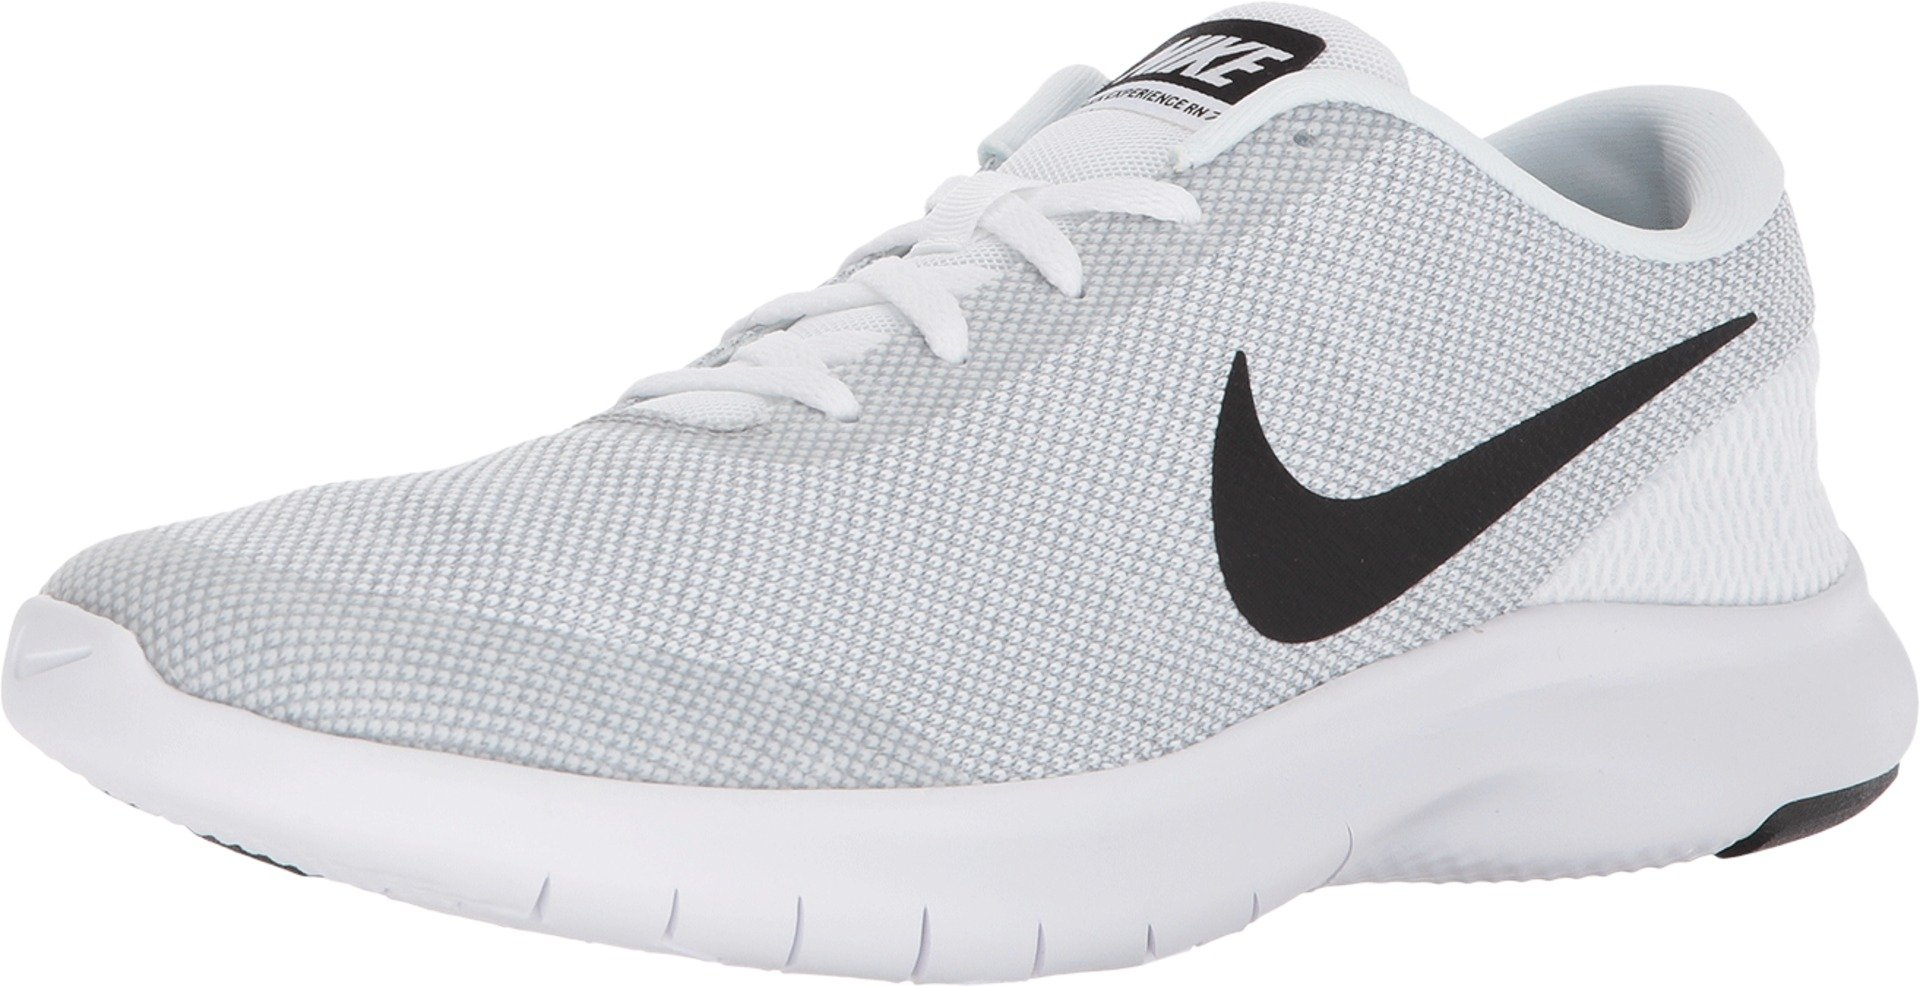 Nike Men's Flex Experience RN 7 Running Shoes (8.5 M US, White/Black-wolf Grey) by Nike